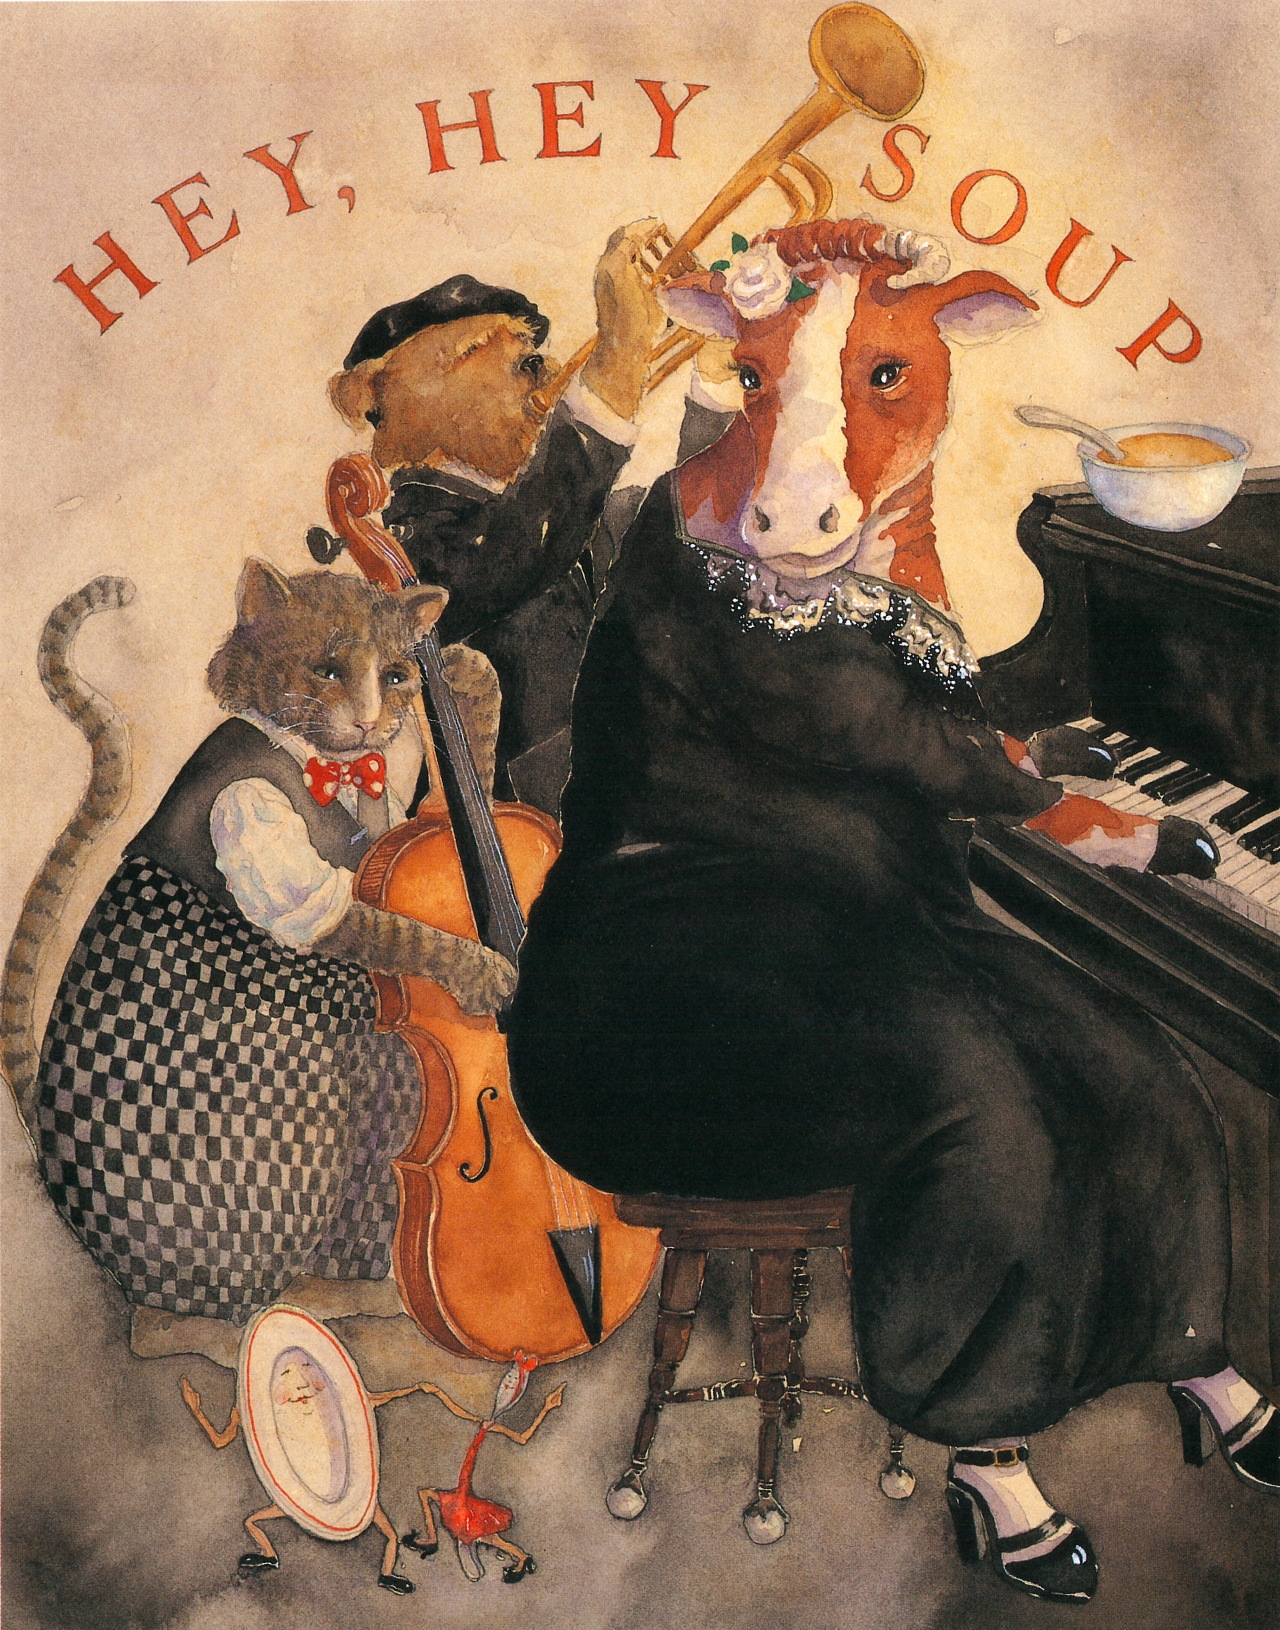 celebrate-picture-books-picture-book-review-blue-moon-soup-hey-hey-soup